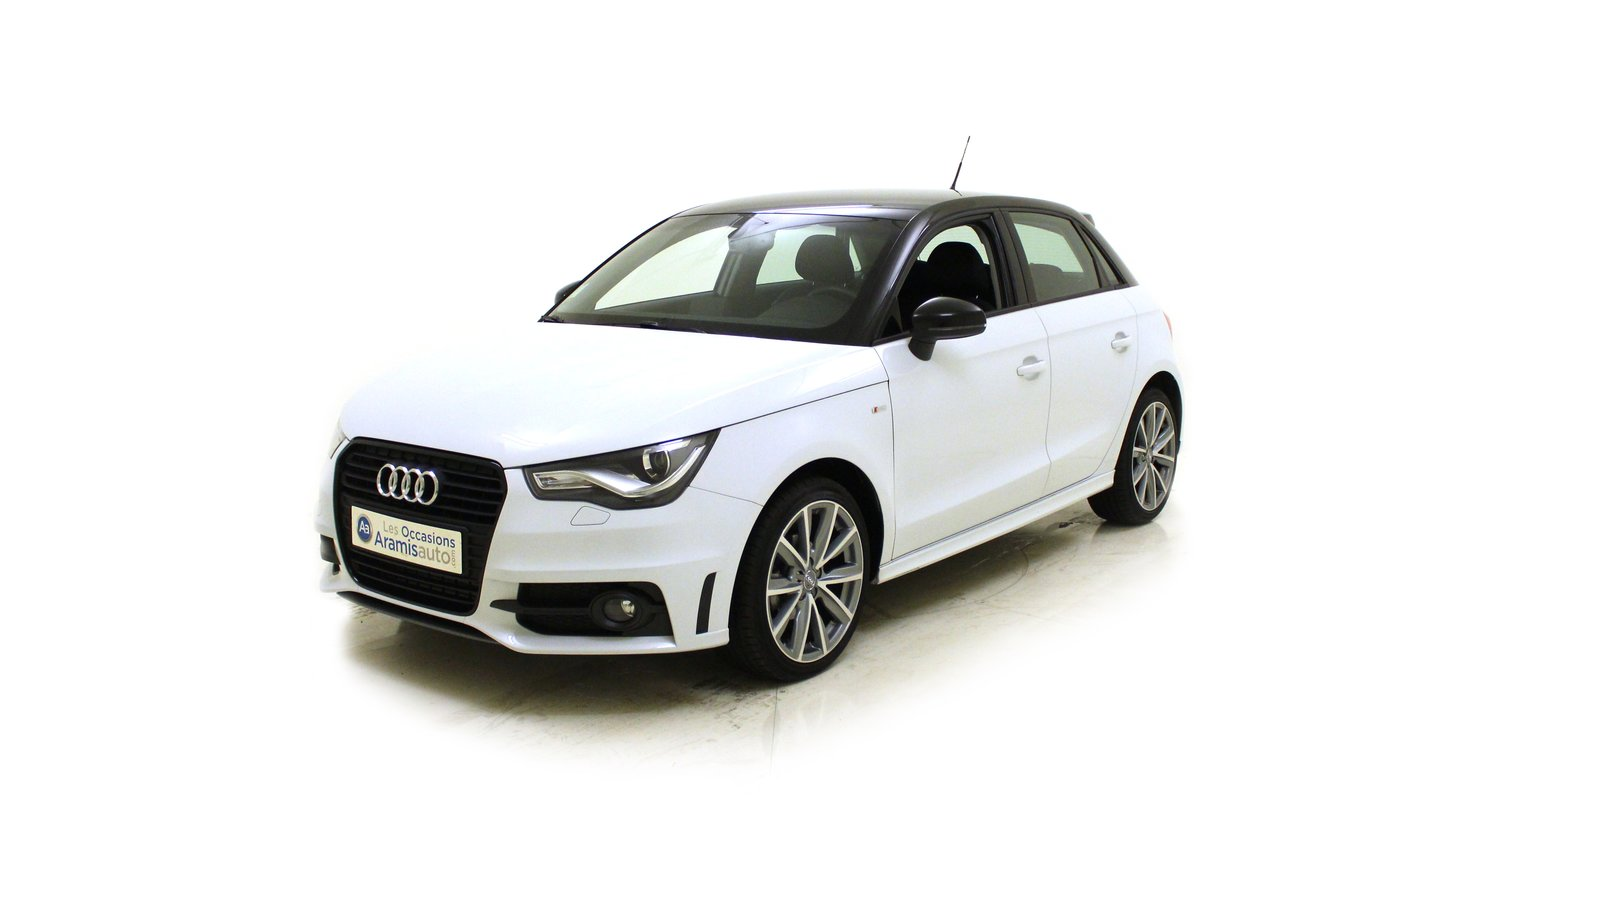 audi a1 sportback urbaine 5 portes diesel 1 6 tdi 90 s tronic bo te automatique ou. Black Bedroom Furniture Sets. Home Design Ideas